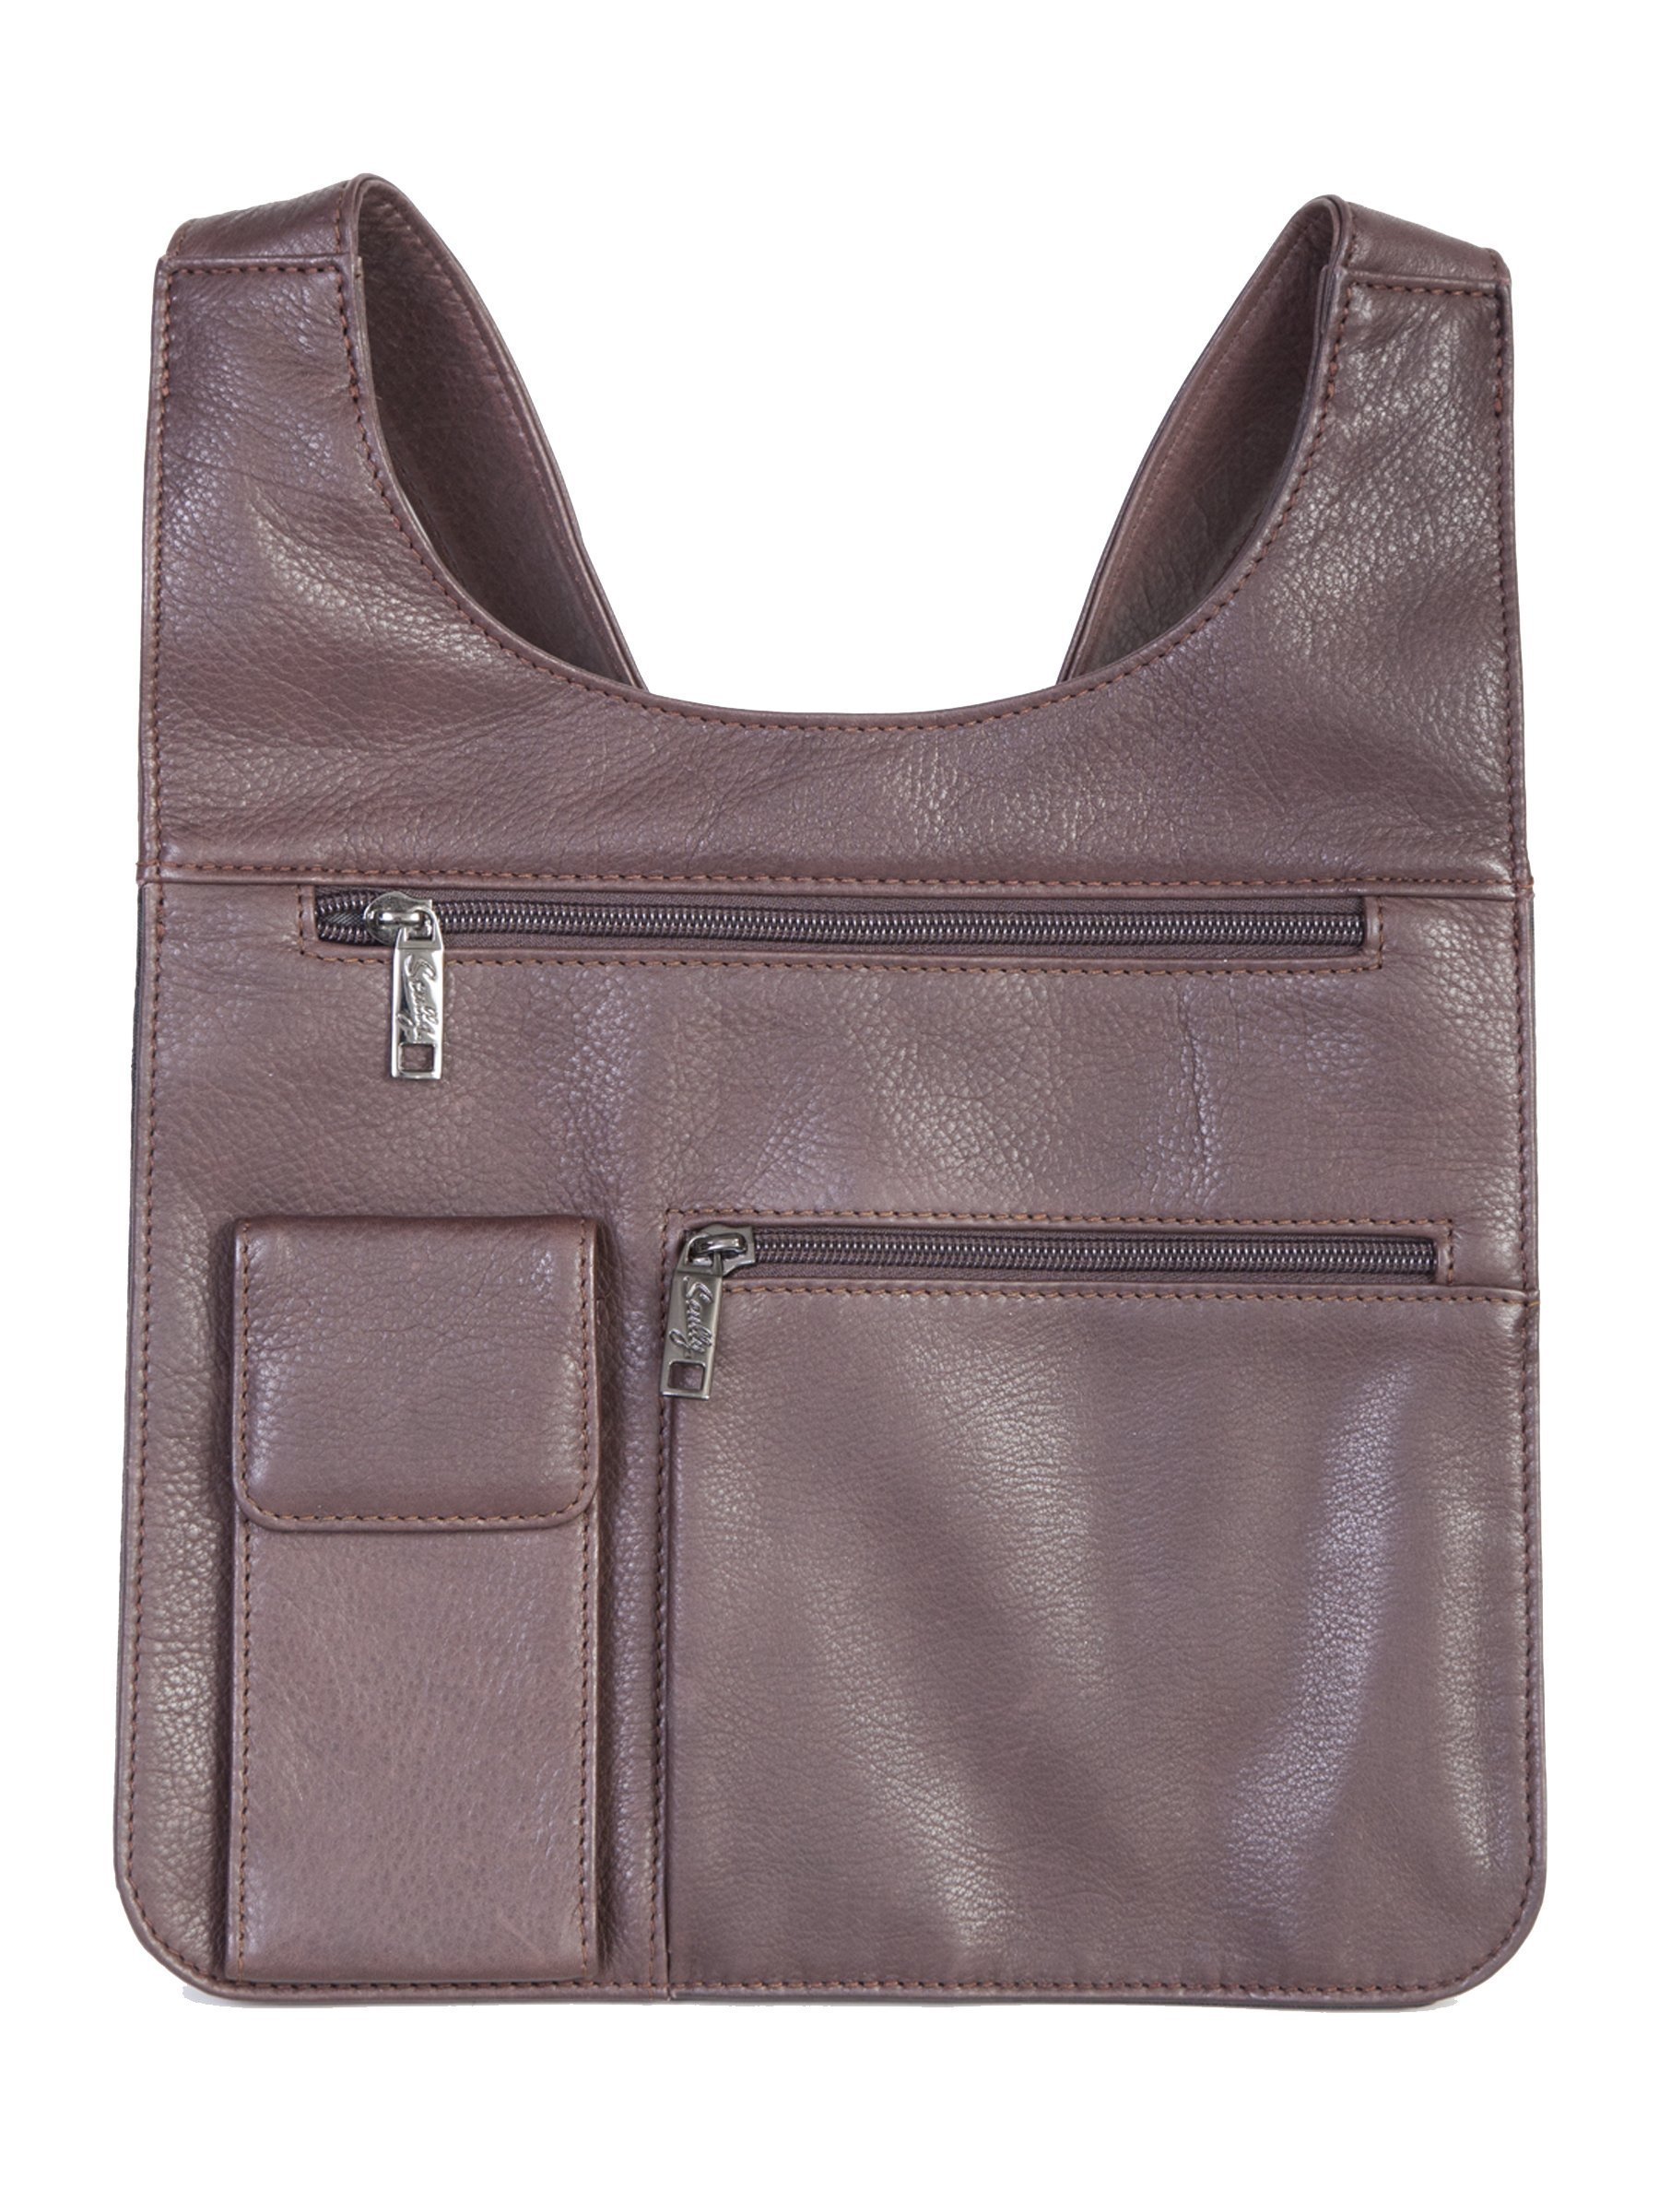 Scully 834-11-25-F Soft Plonge Leather Ladies Travel Bag - Chocolate